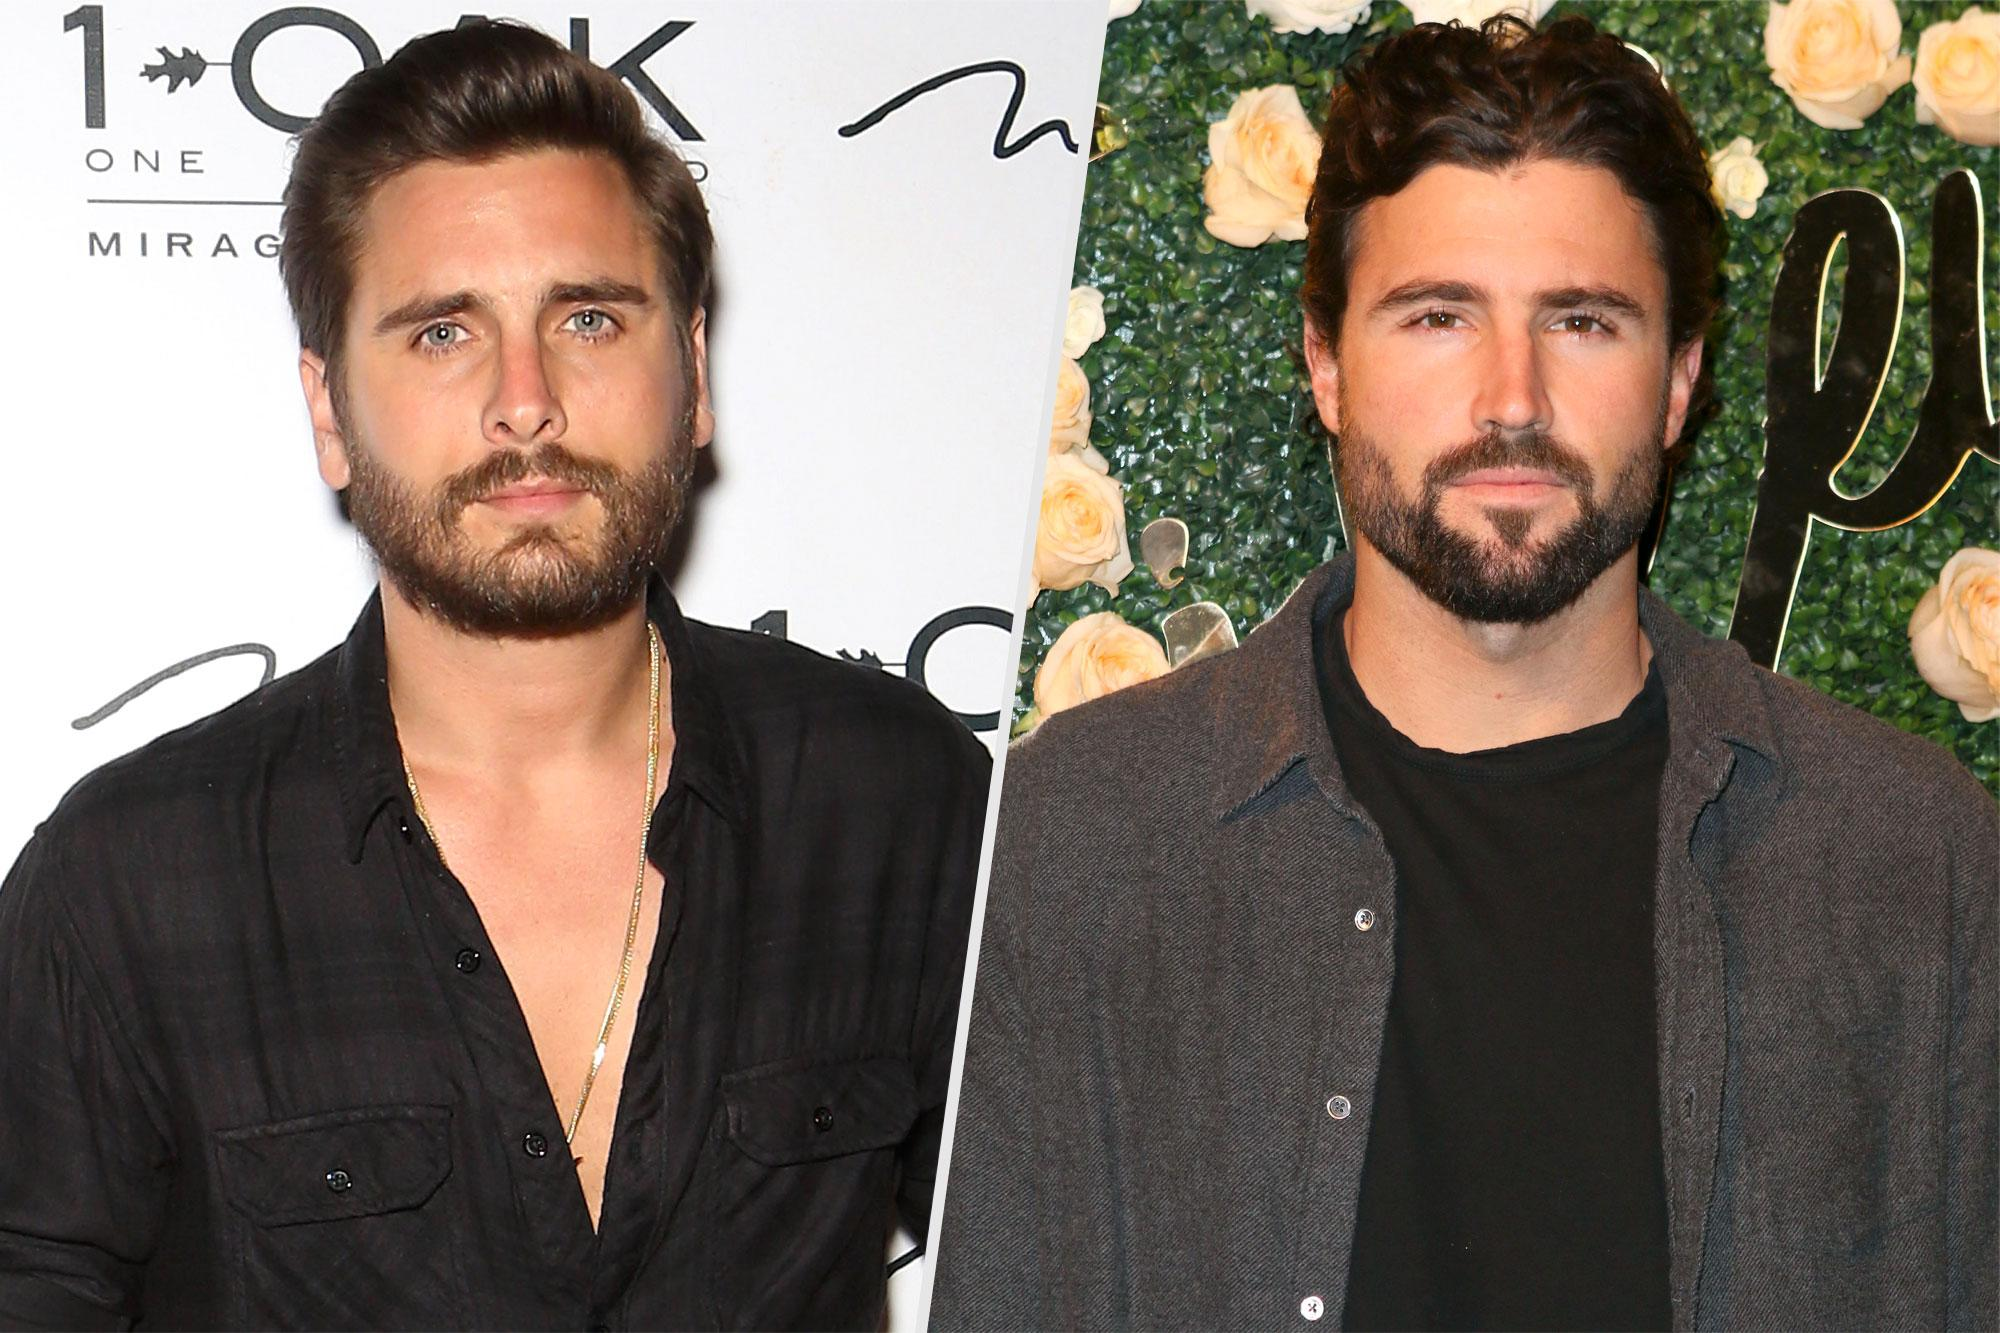 Scott Disick and Brody Jenner Bro-Out at Sundance: Source